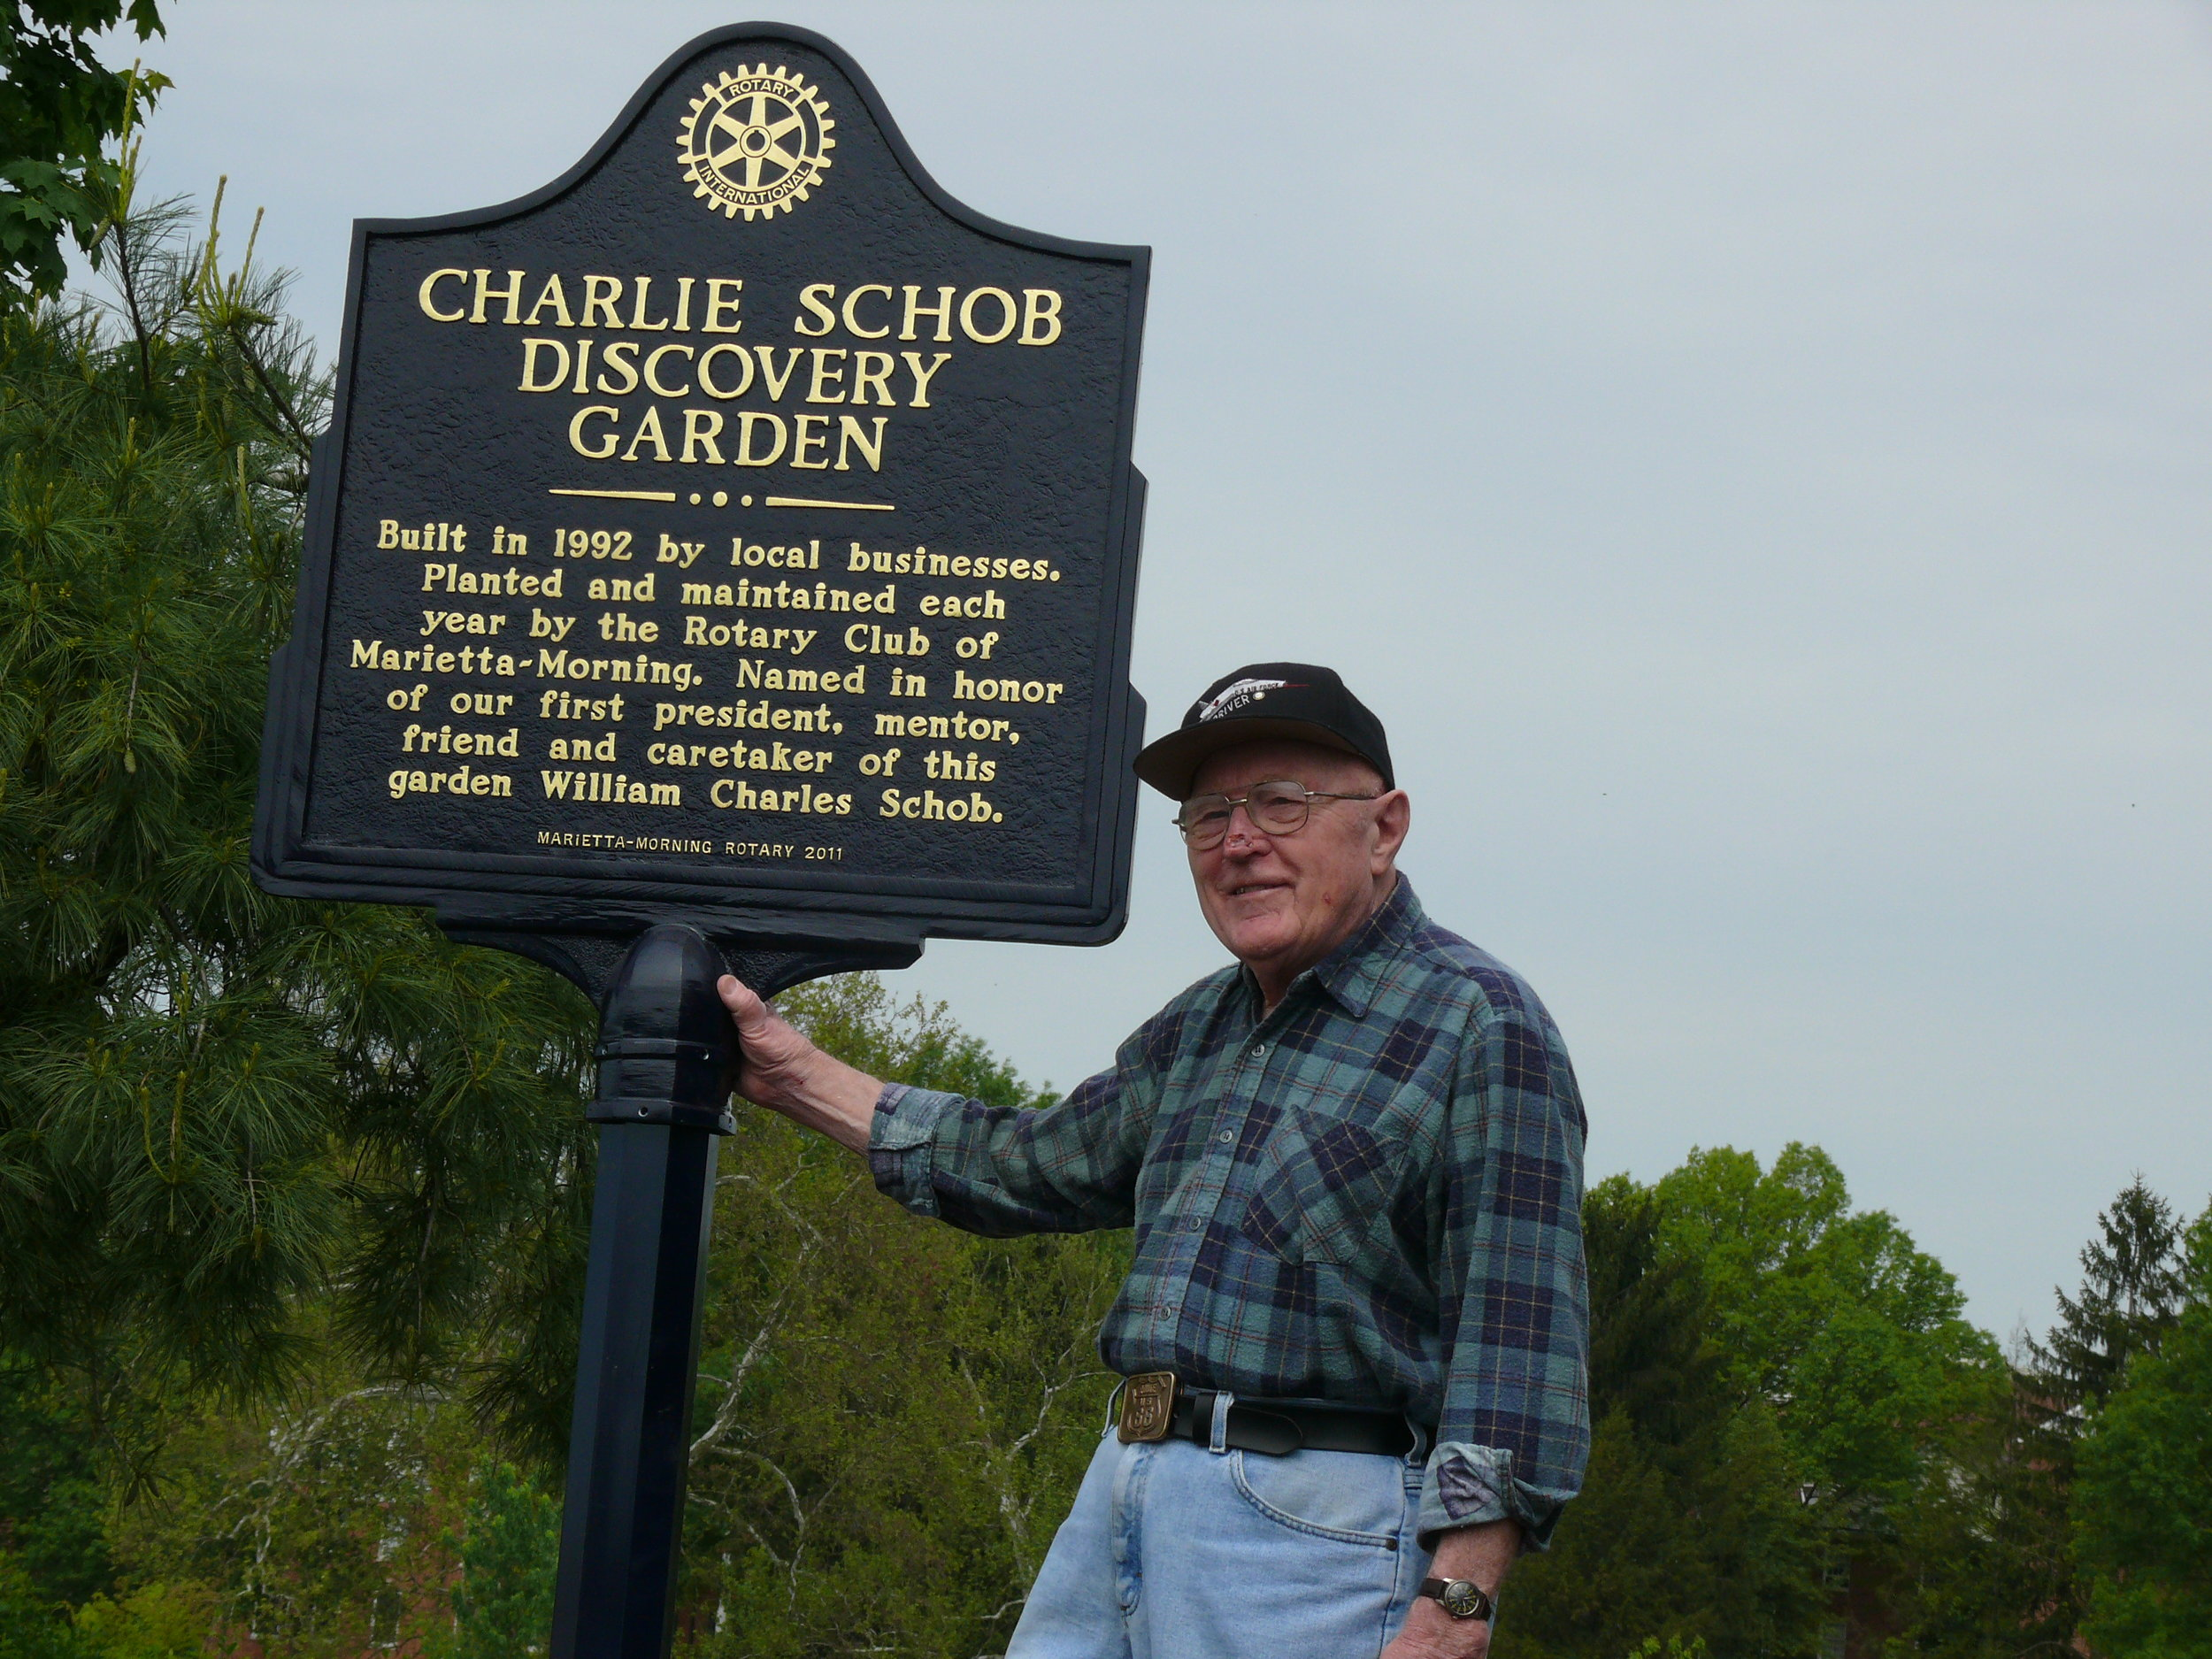 Charlie Schob at the Discovery Garden Dedication